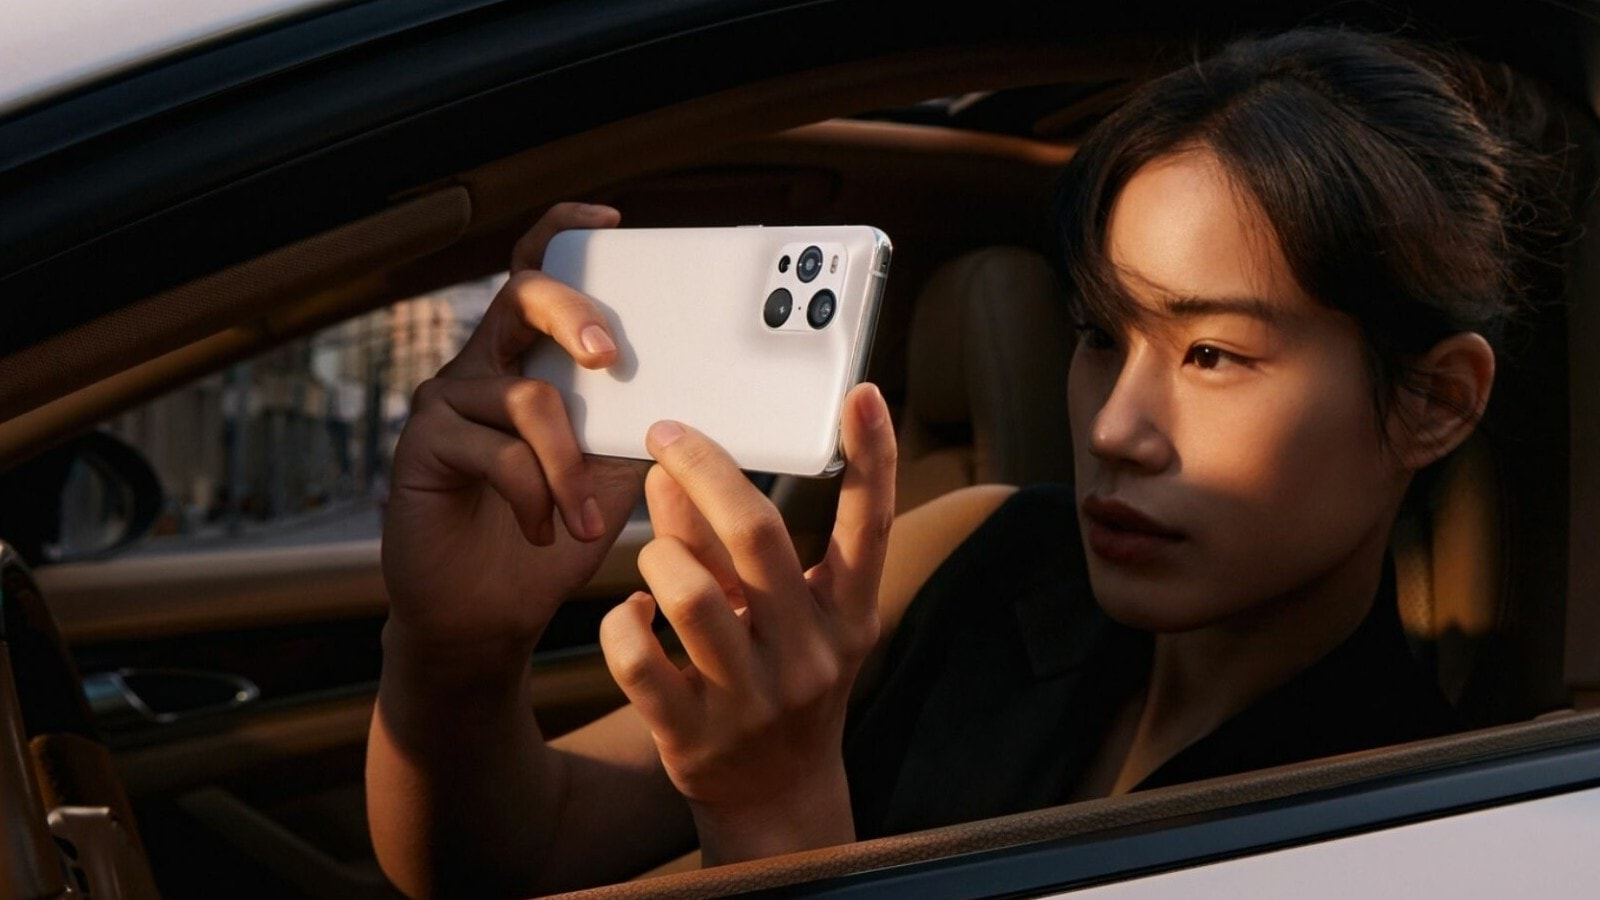 OPPO Find X3 Pro smartphone is an Android with the 10-bit full-path color engine